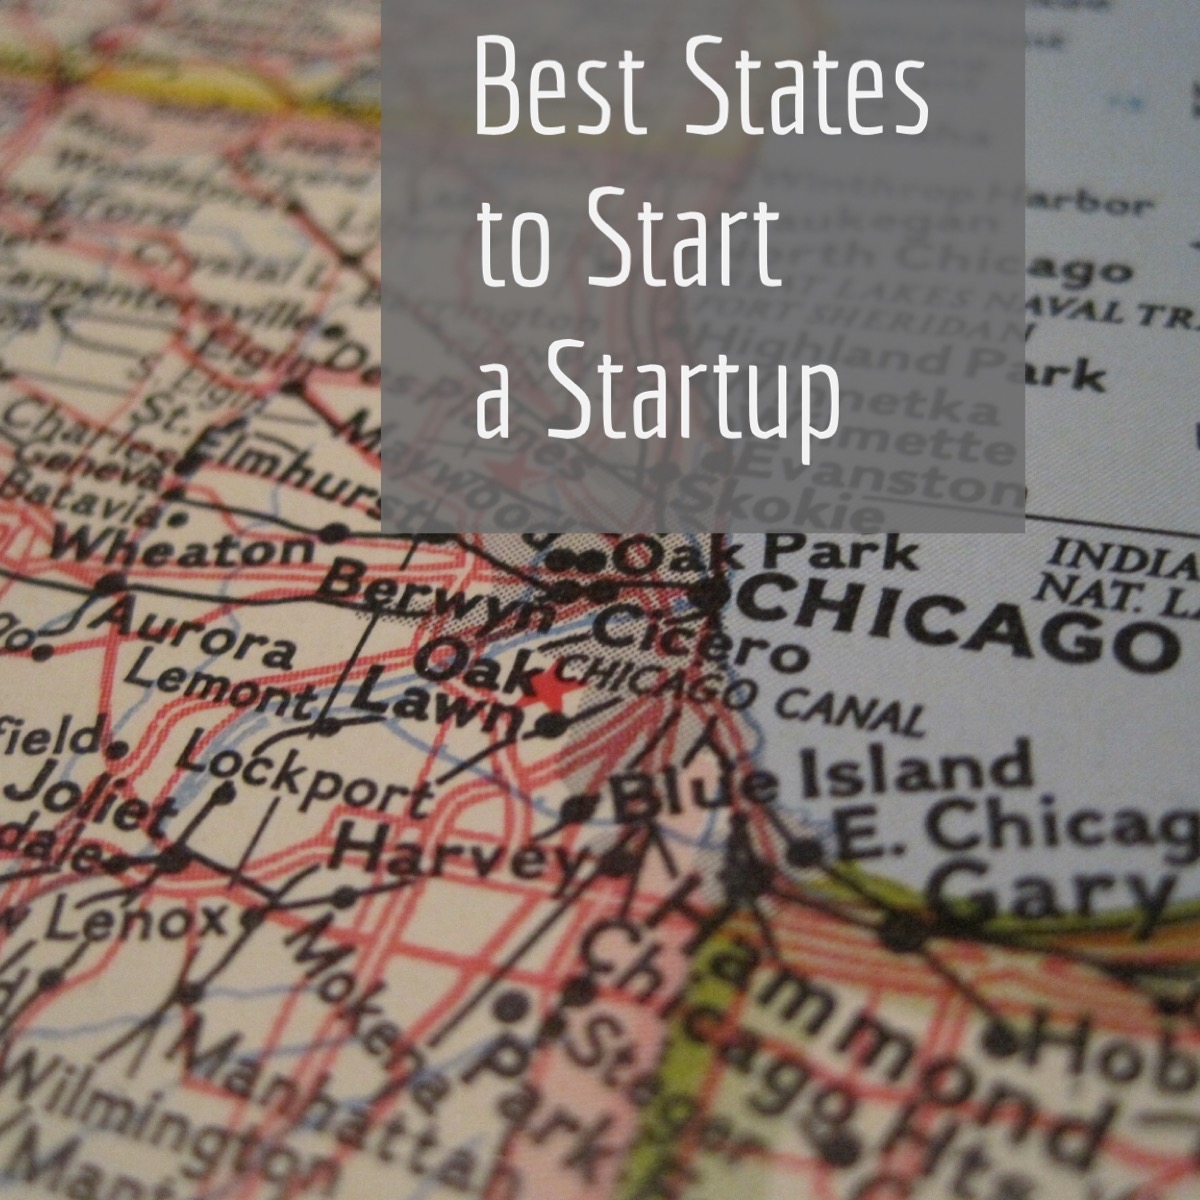 Best States to Start a Startup